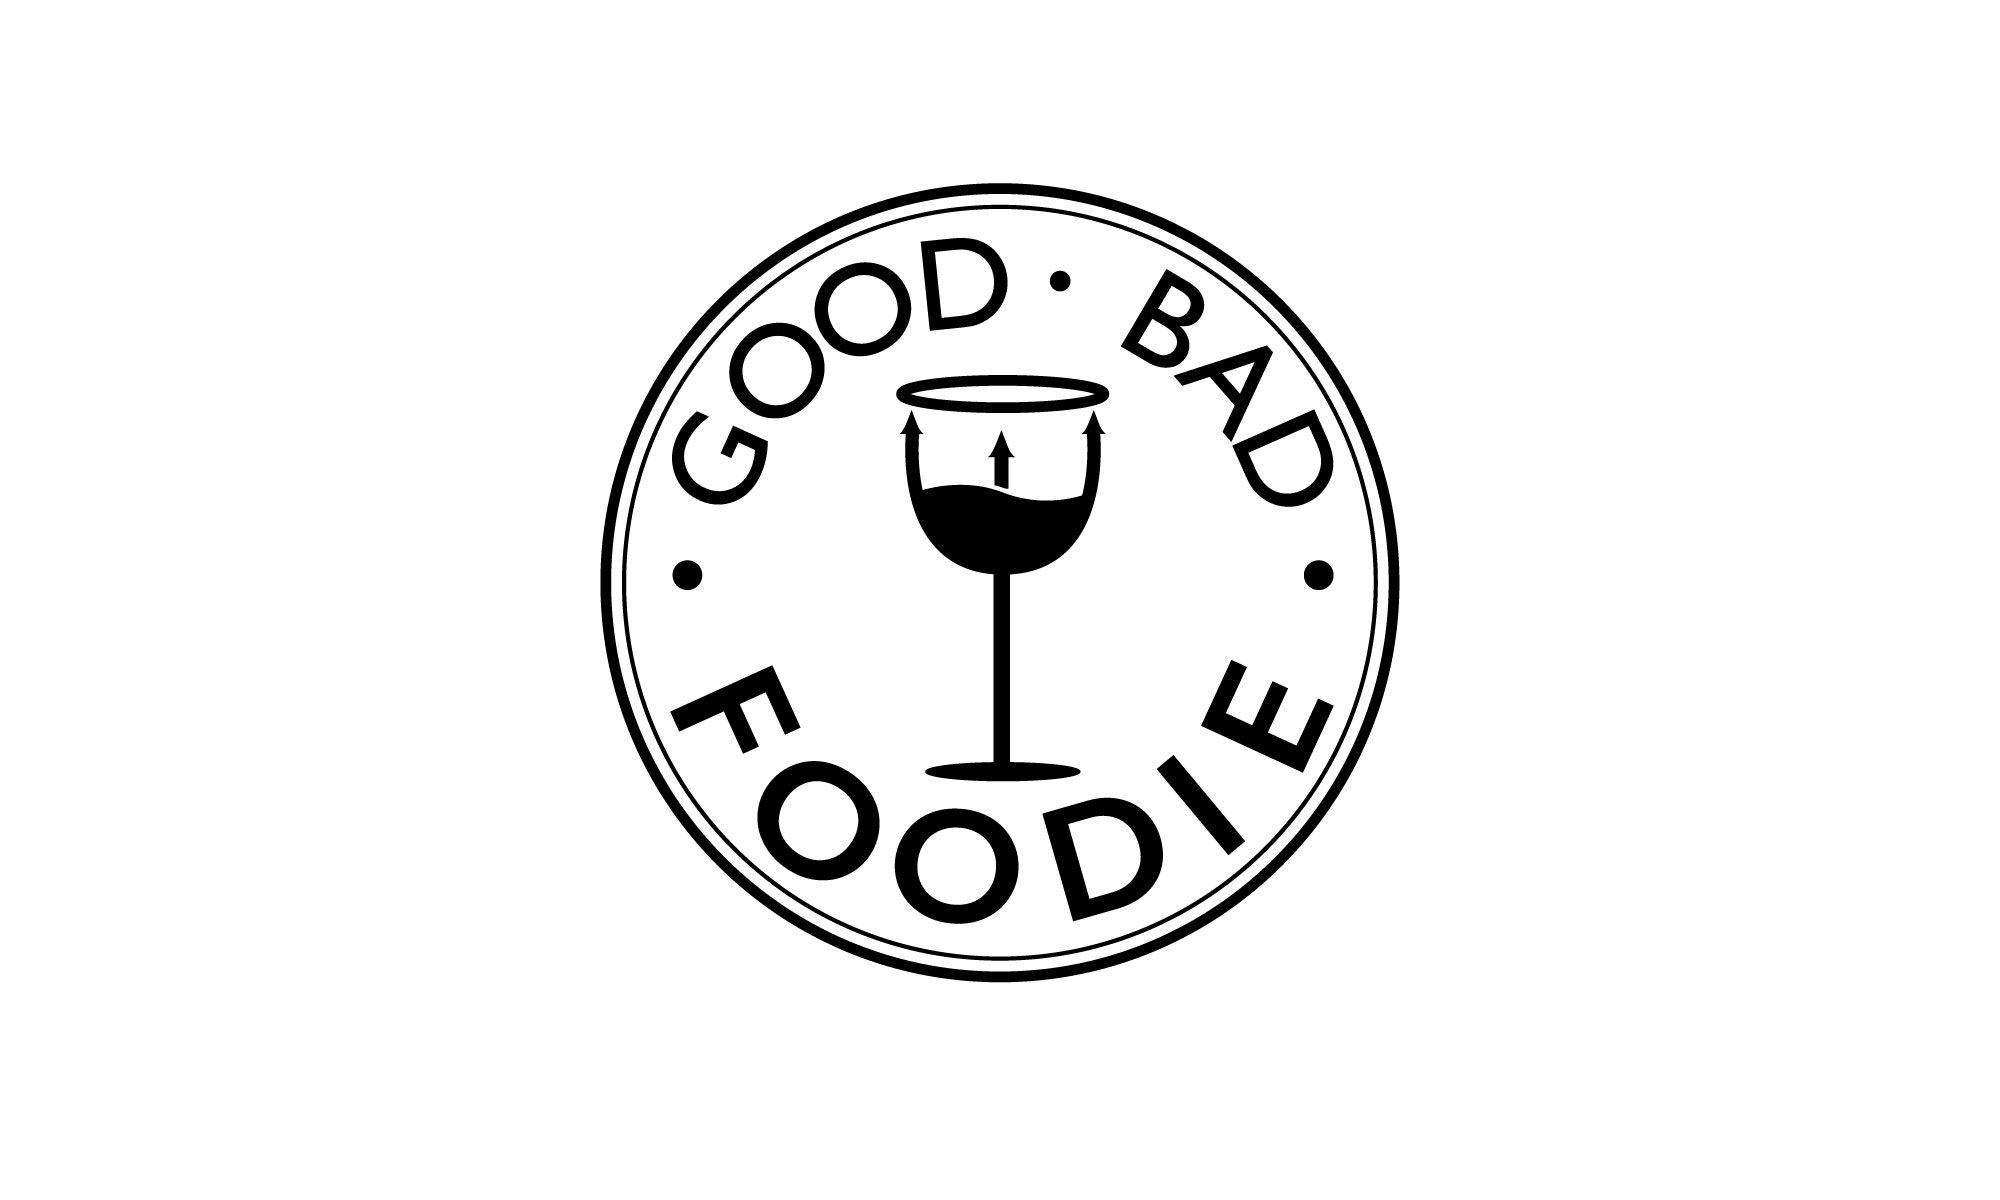 Good Bad Foodie